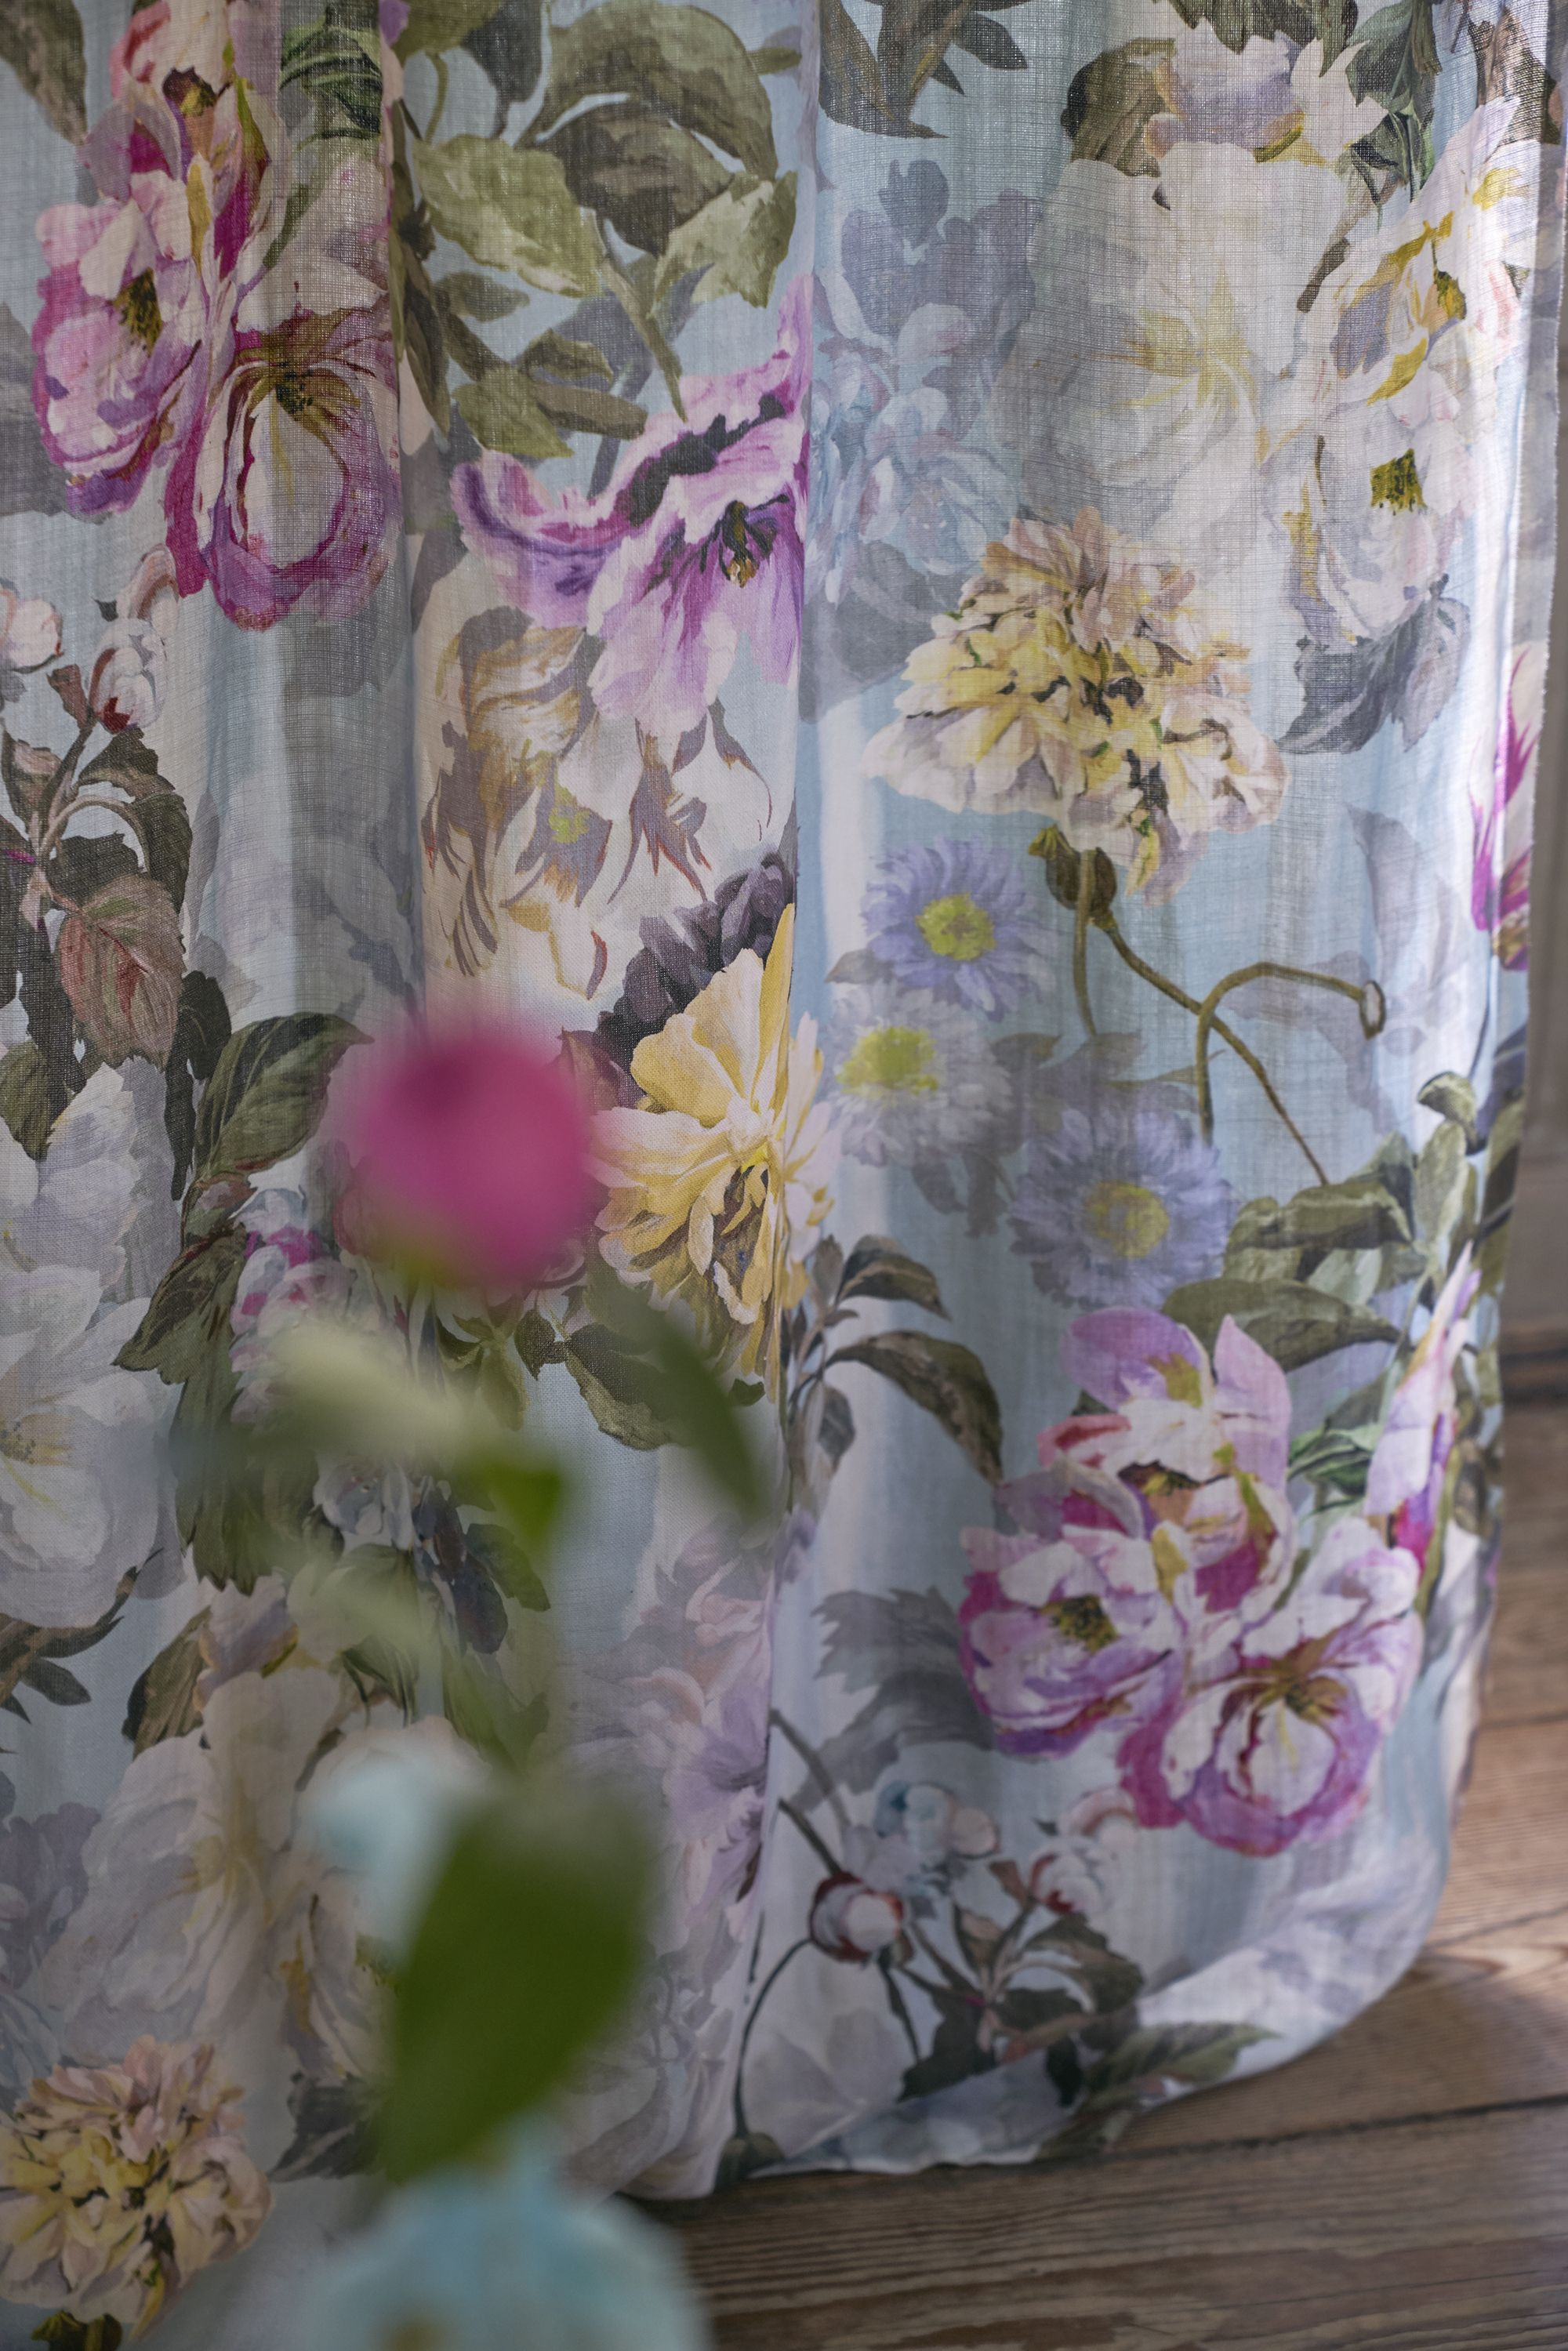 Delft Flower Sky fabric a dramatic display of large